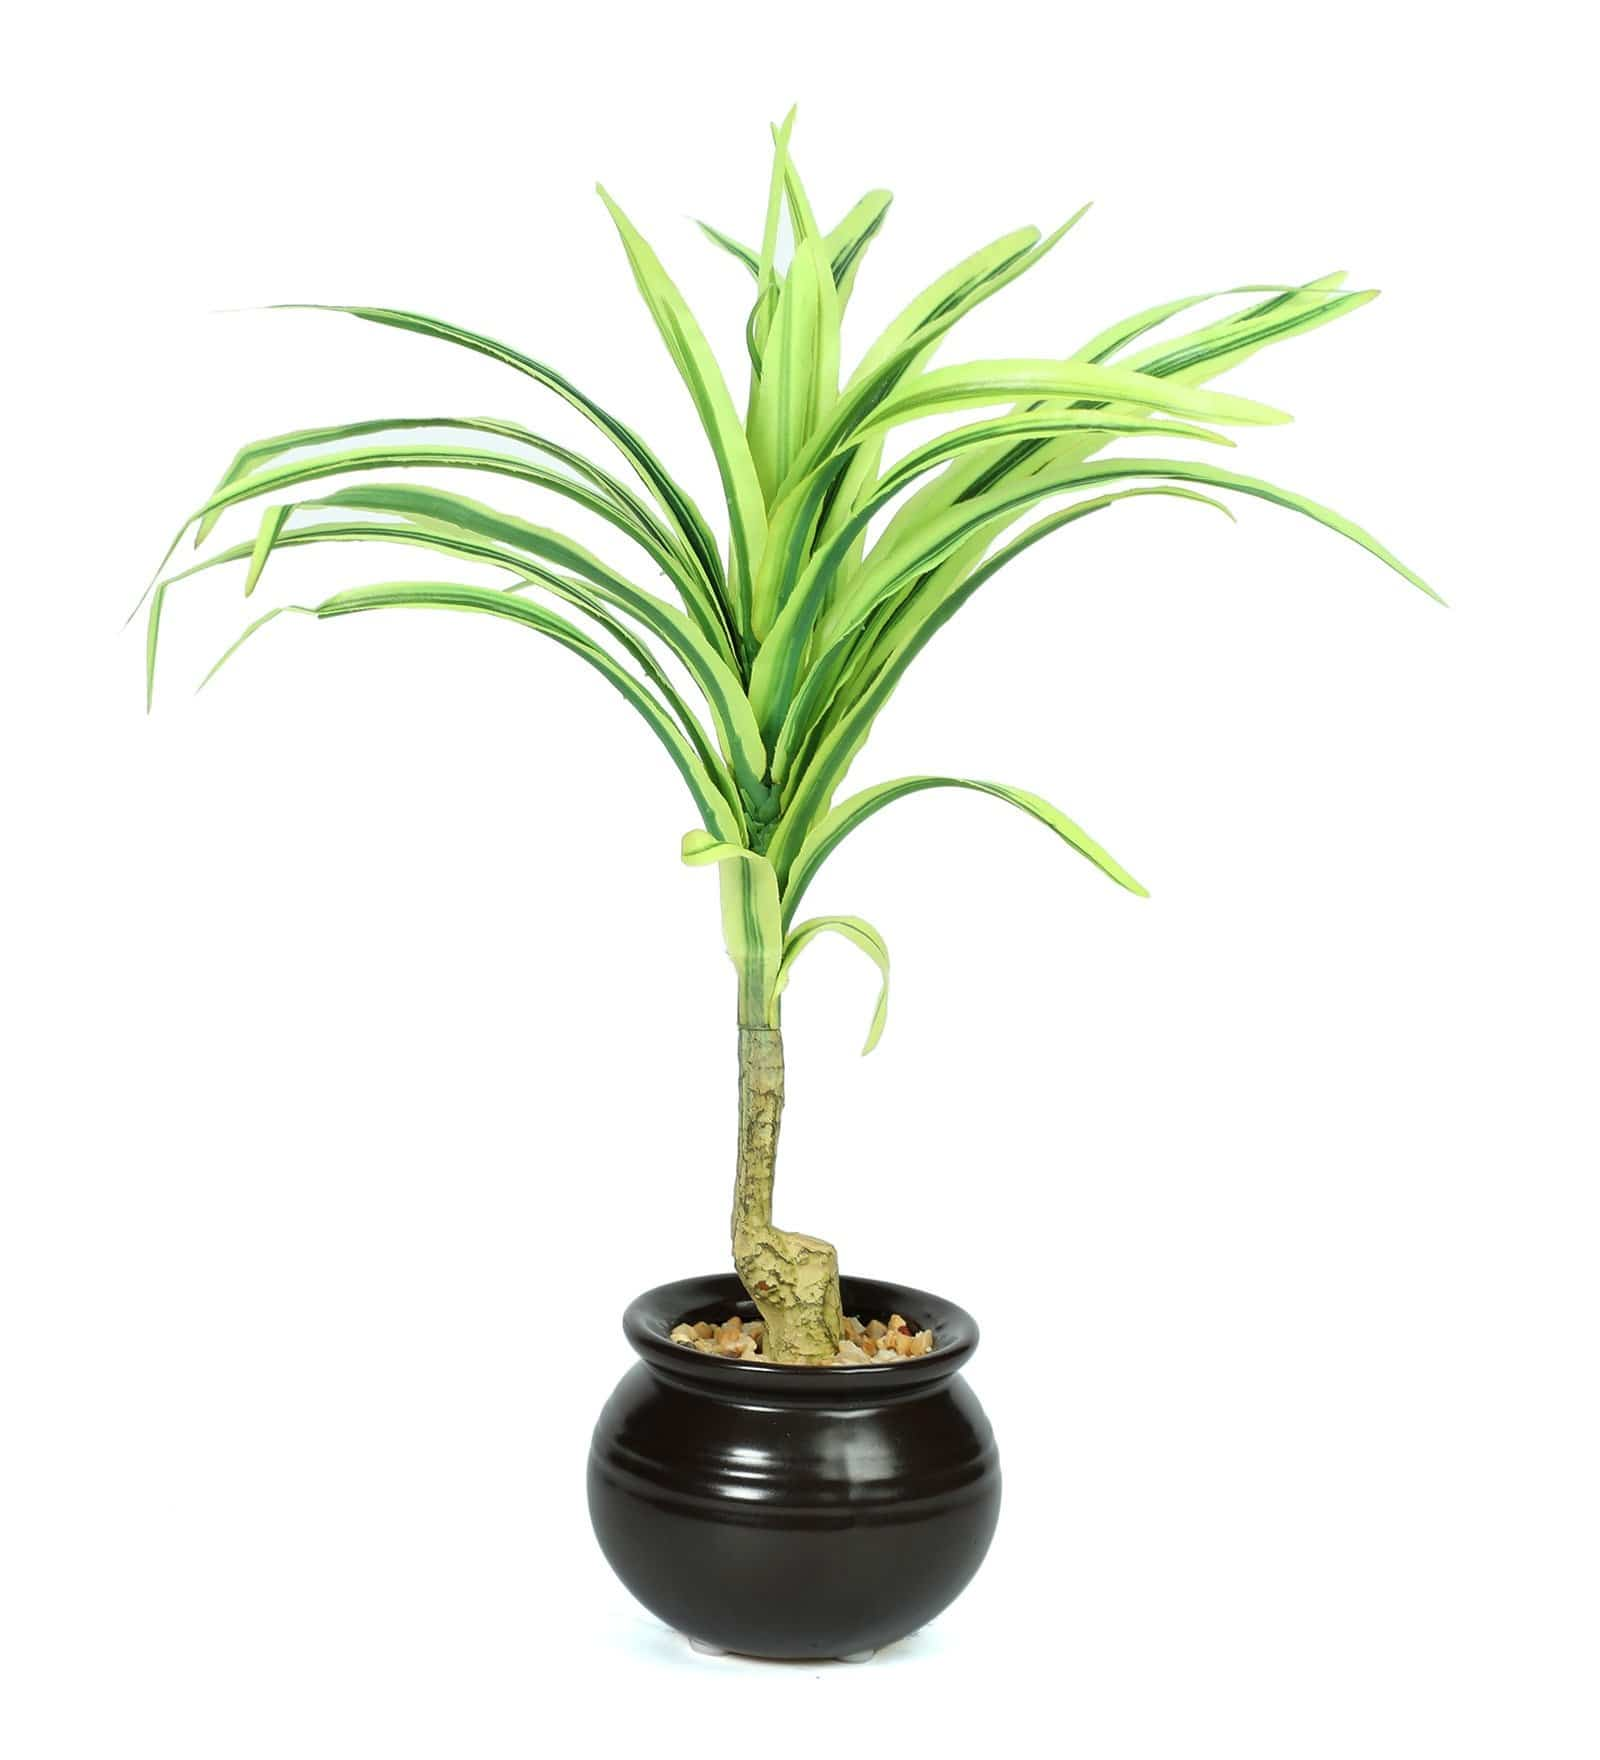 Artificial Bonsai tree in Ceramic Pot for decoration  ( L 15 X H 30 cm ) - Artificial Flowers & Plants - PolliNation